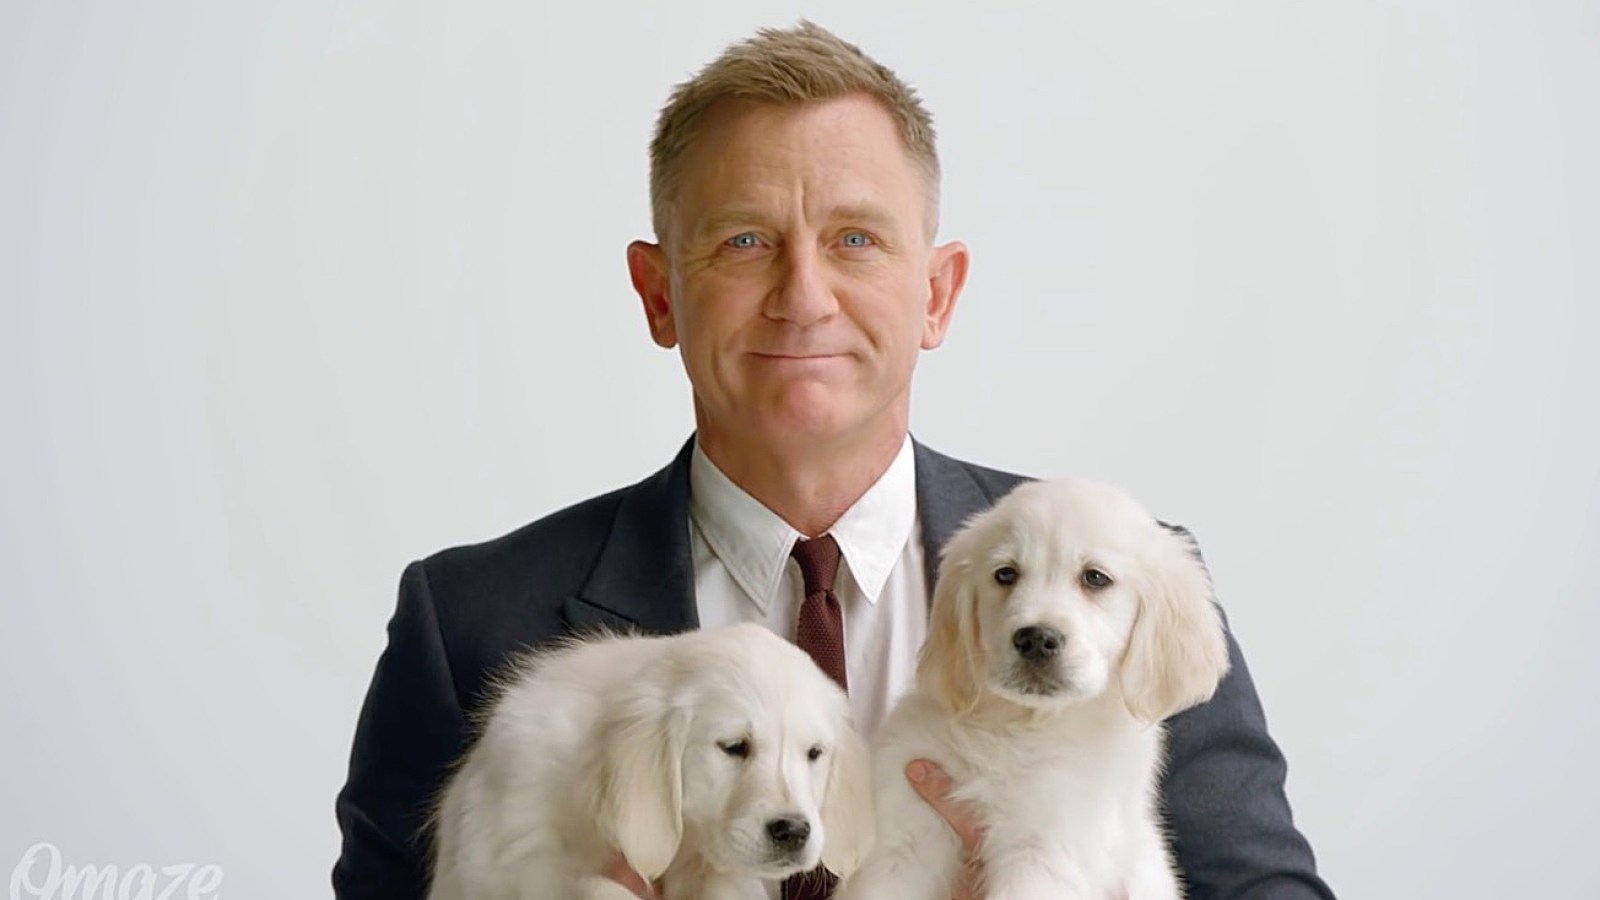 Daniel Craig Plays With Adorable Puppies In New Charity Ad